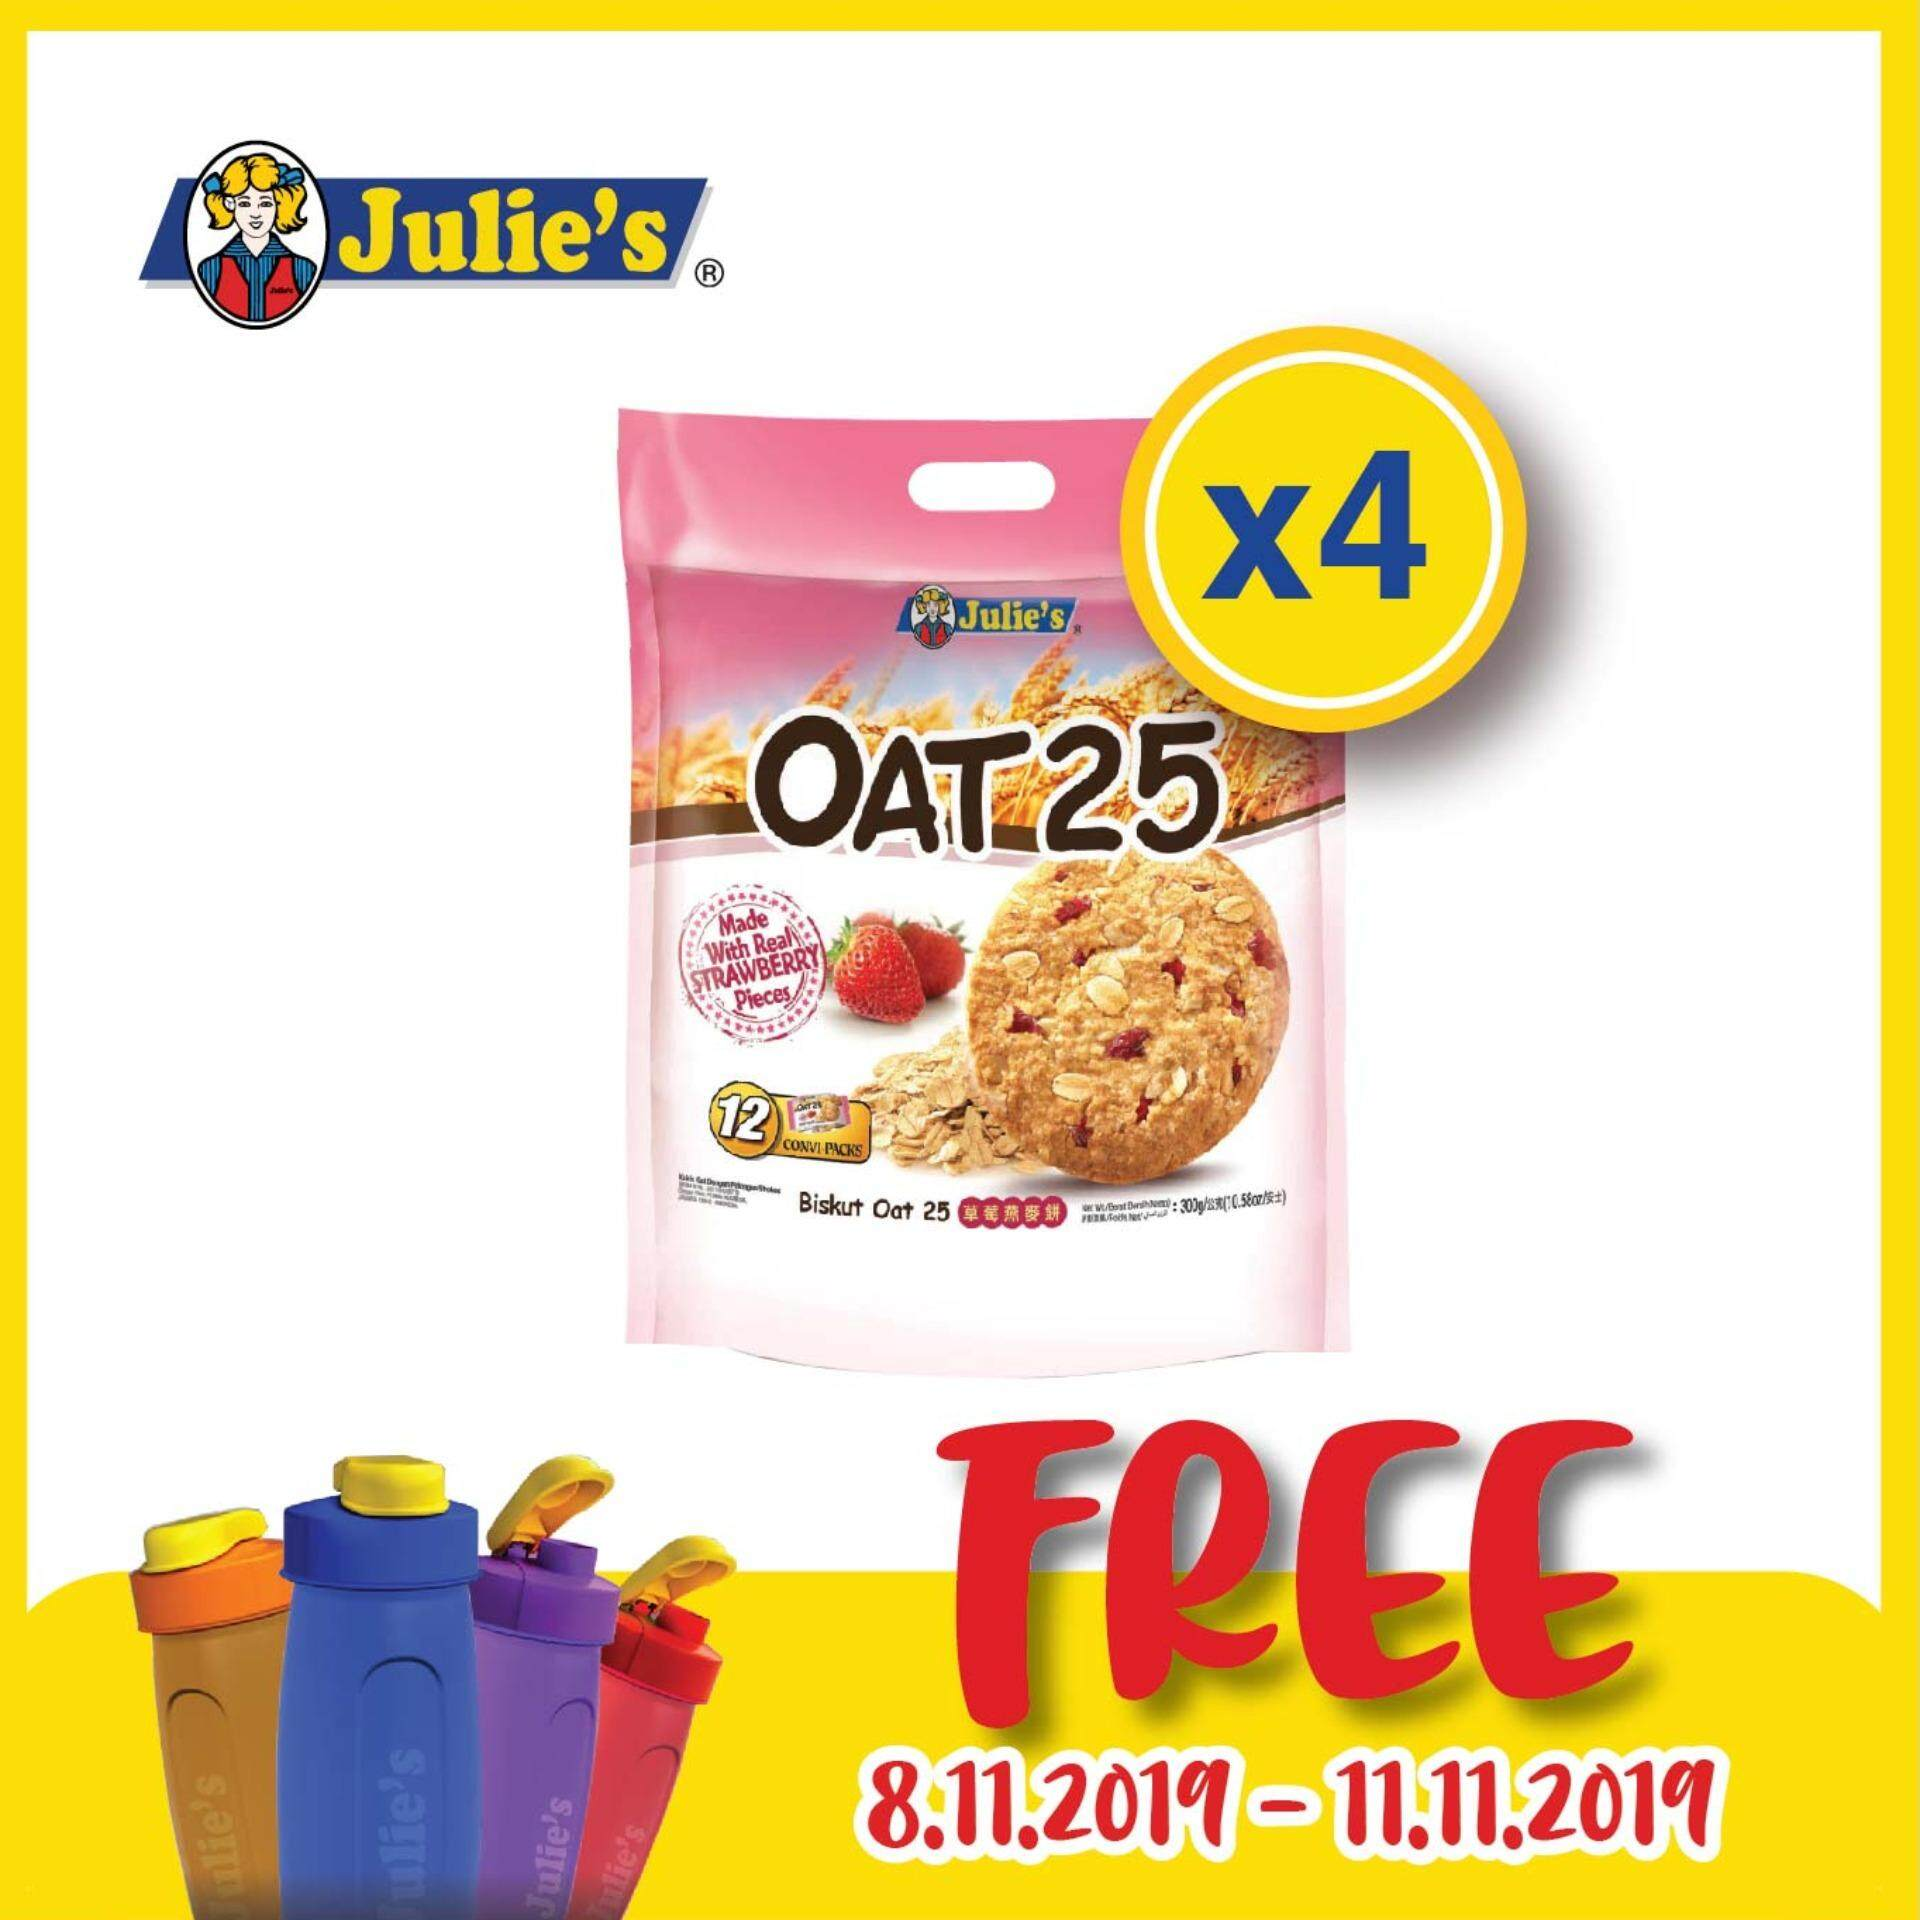 Julie's Oat25 Strawberry Biscuit x 4 packs + Free 1 Water Tumbler